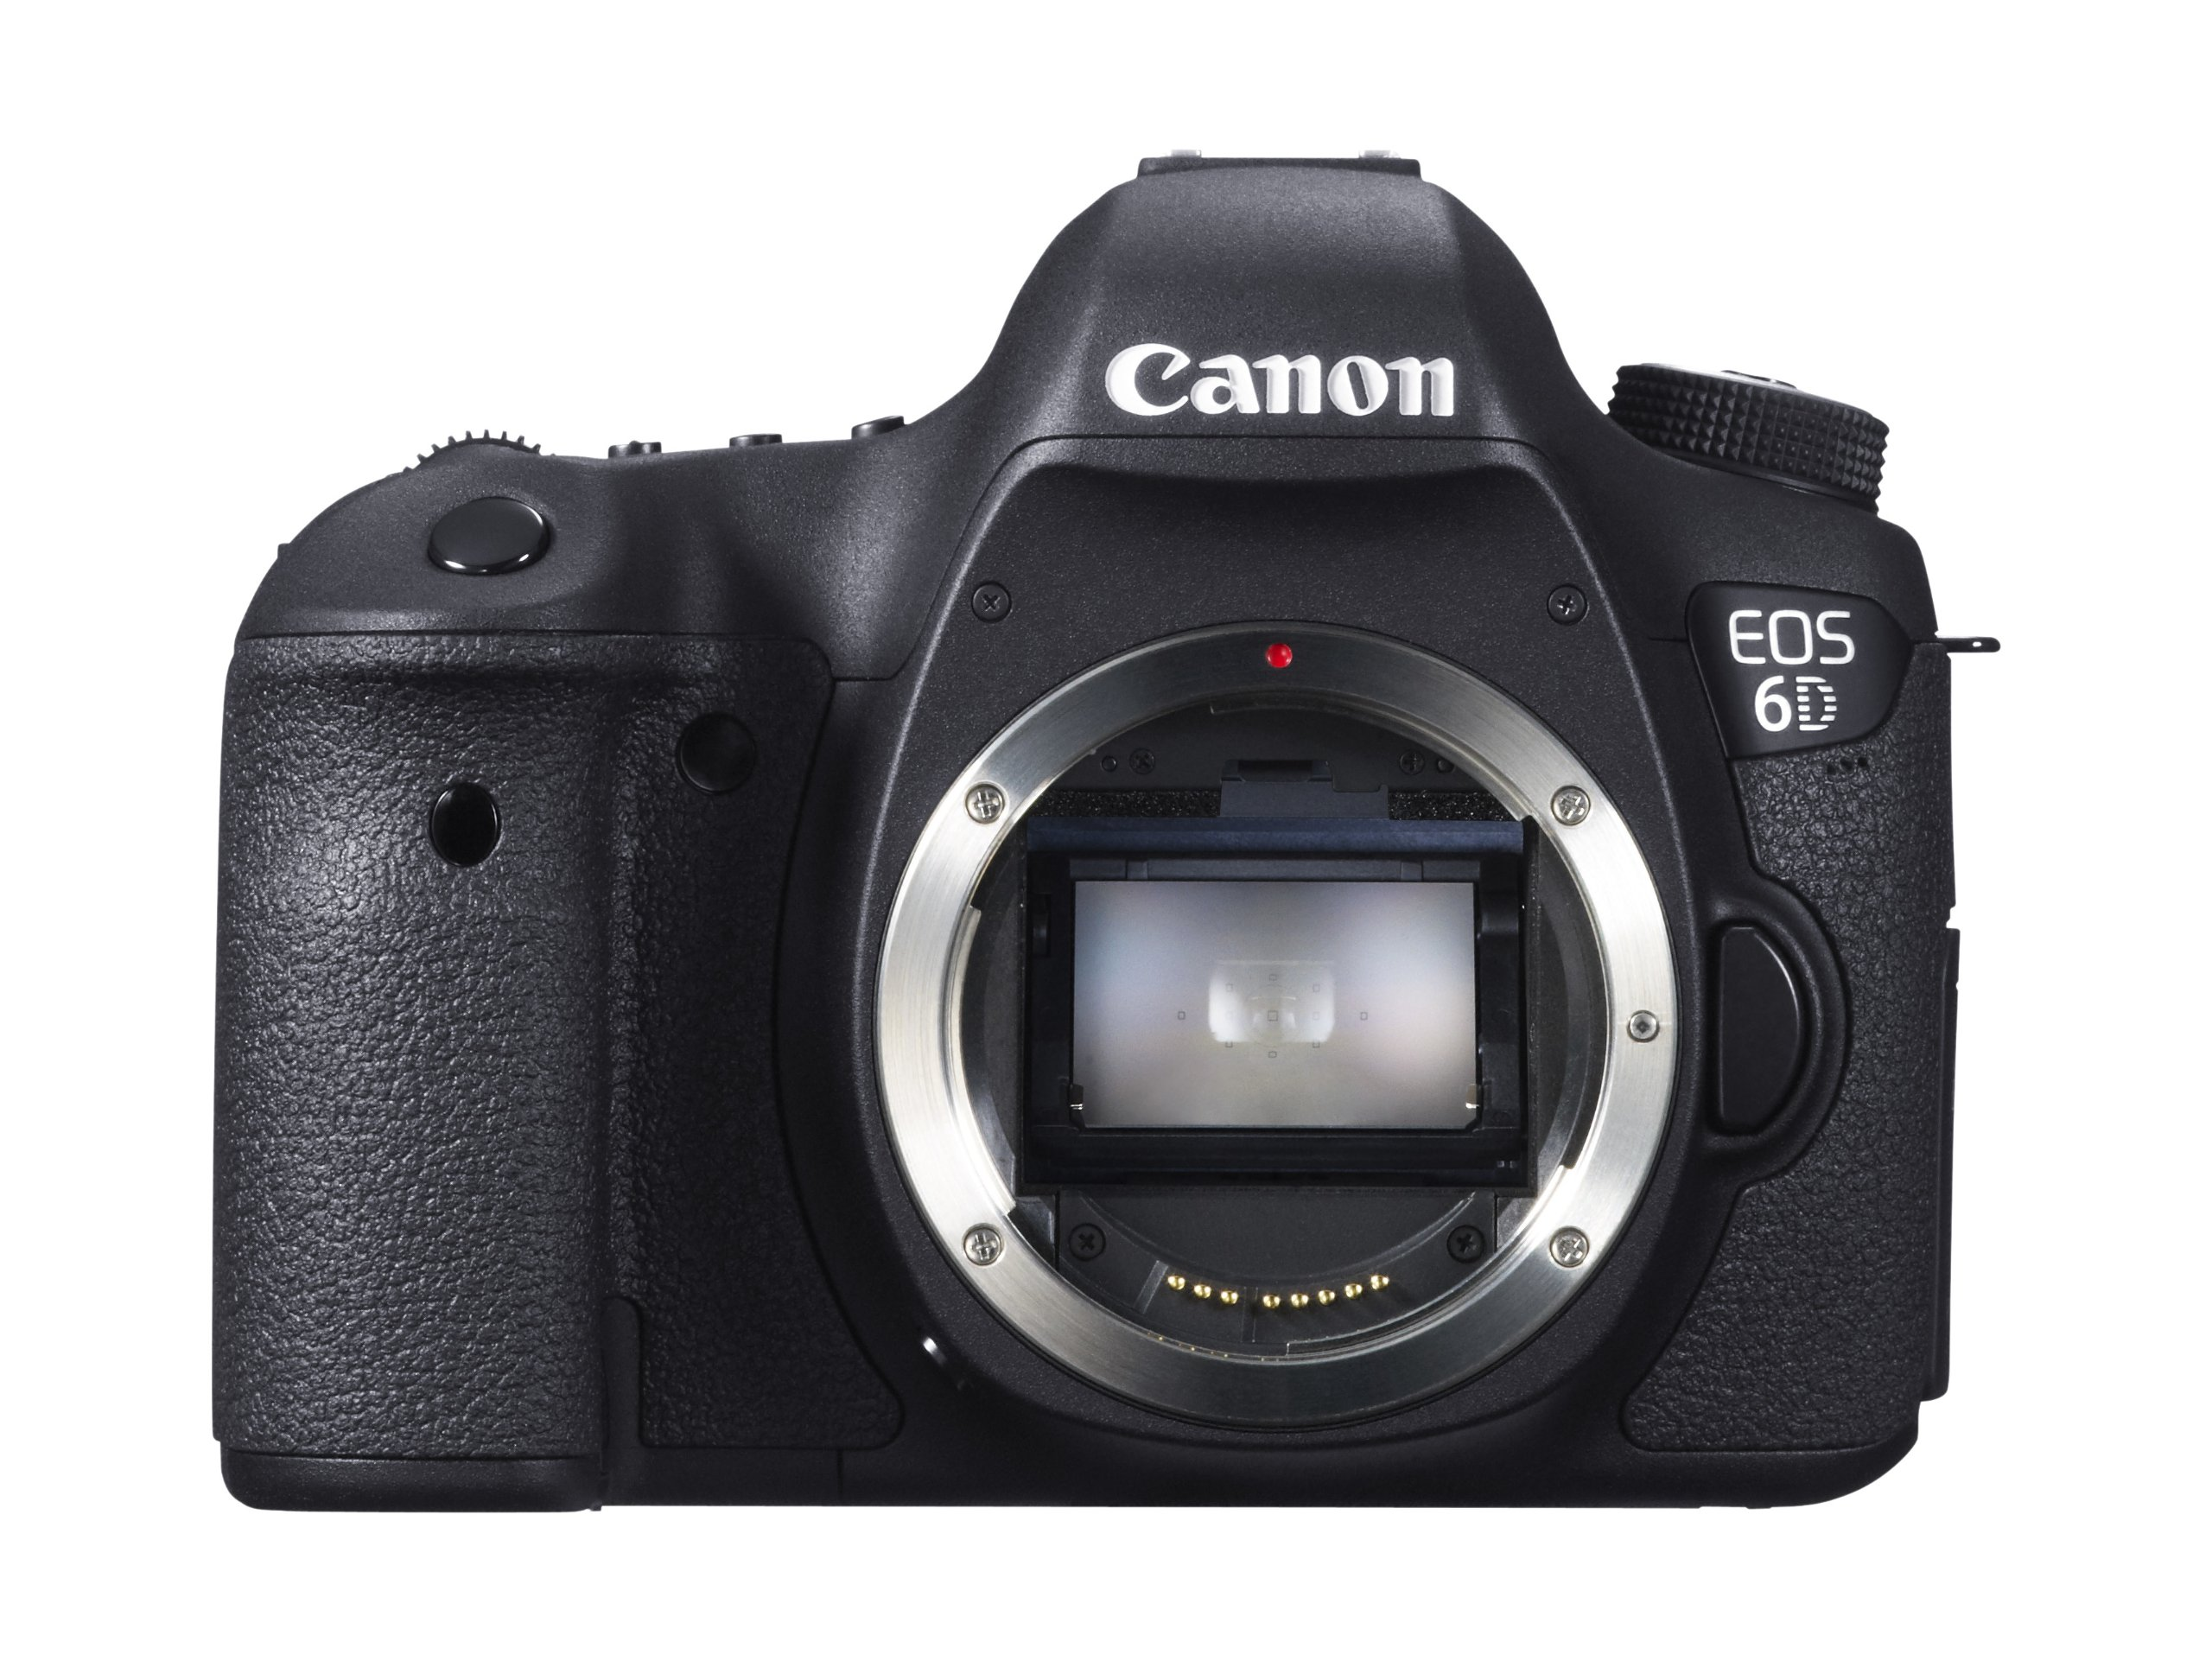 Canon EOS 6D 20.2 MP CMOS Digital SLR Camera with 3.0-Inch LCD (Body Only) - Wi-Fi Enabled by Canon